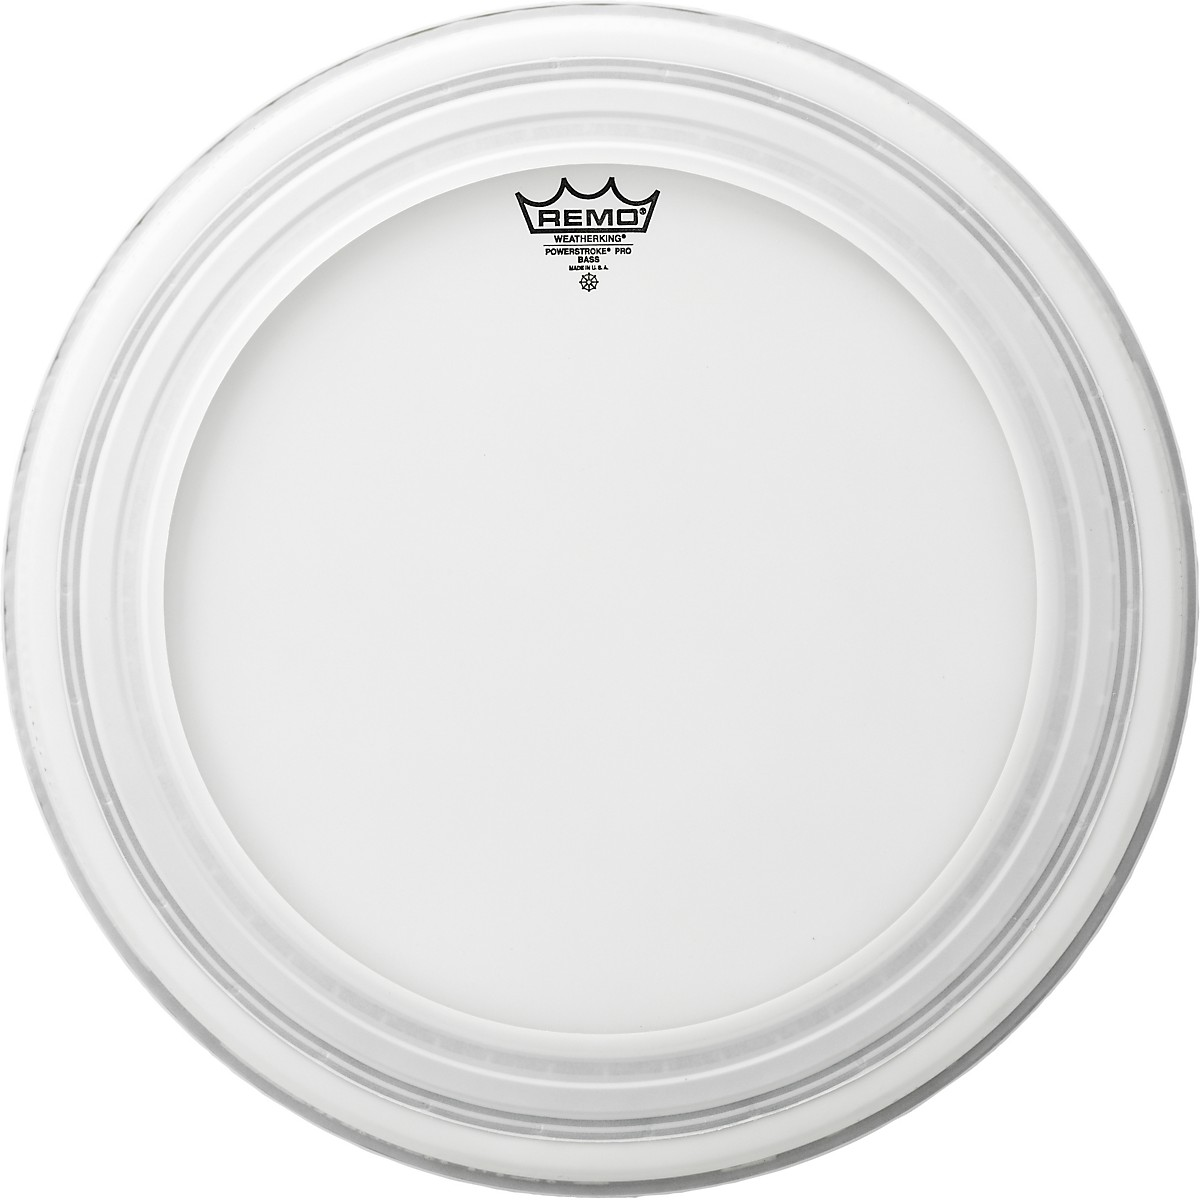 """Remo 20/"""" Powerstroke Pro Coated Bass Drum Head"""